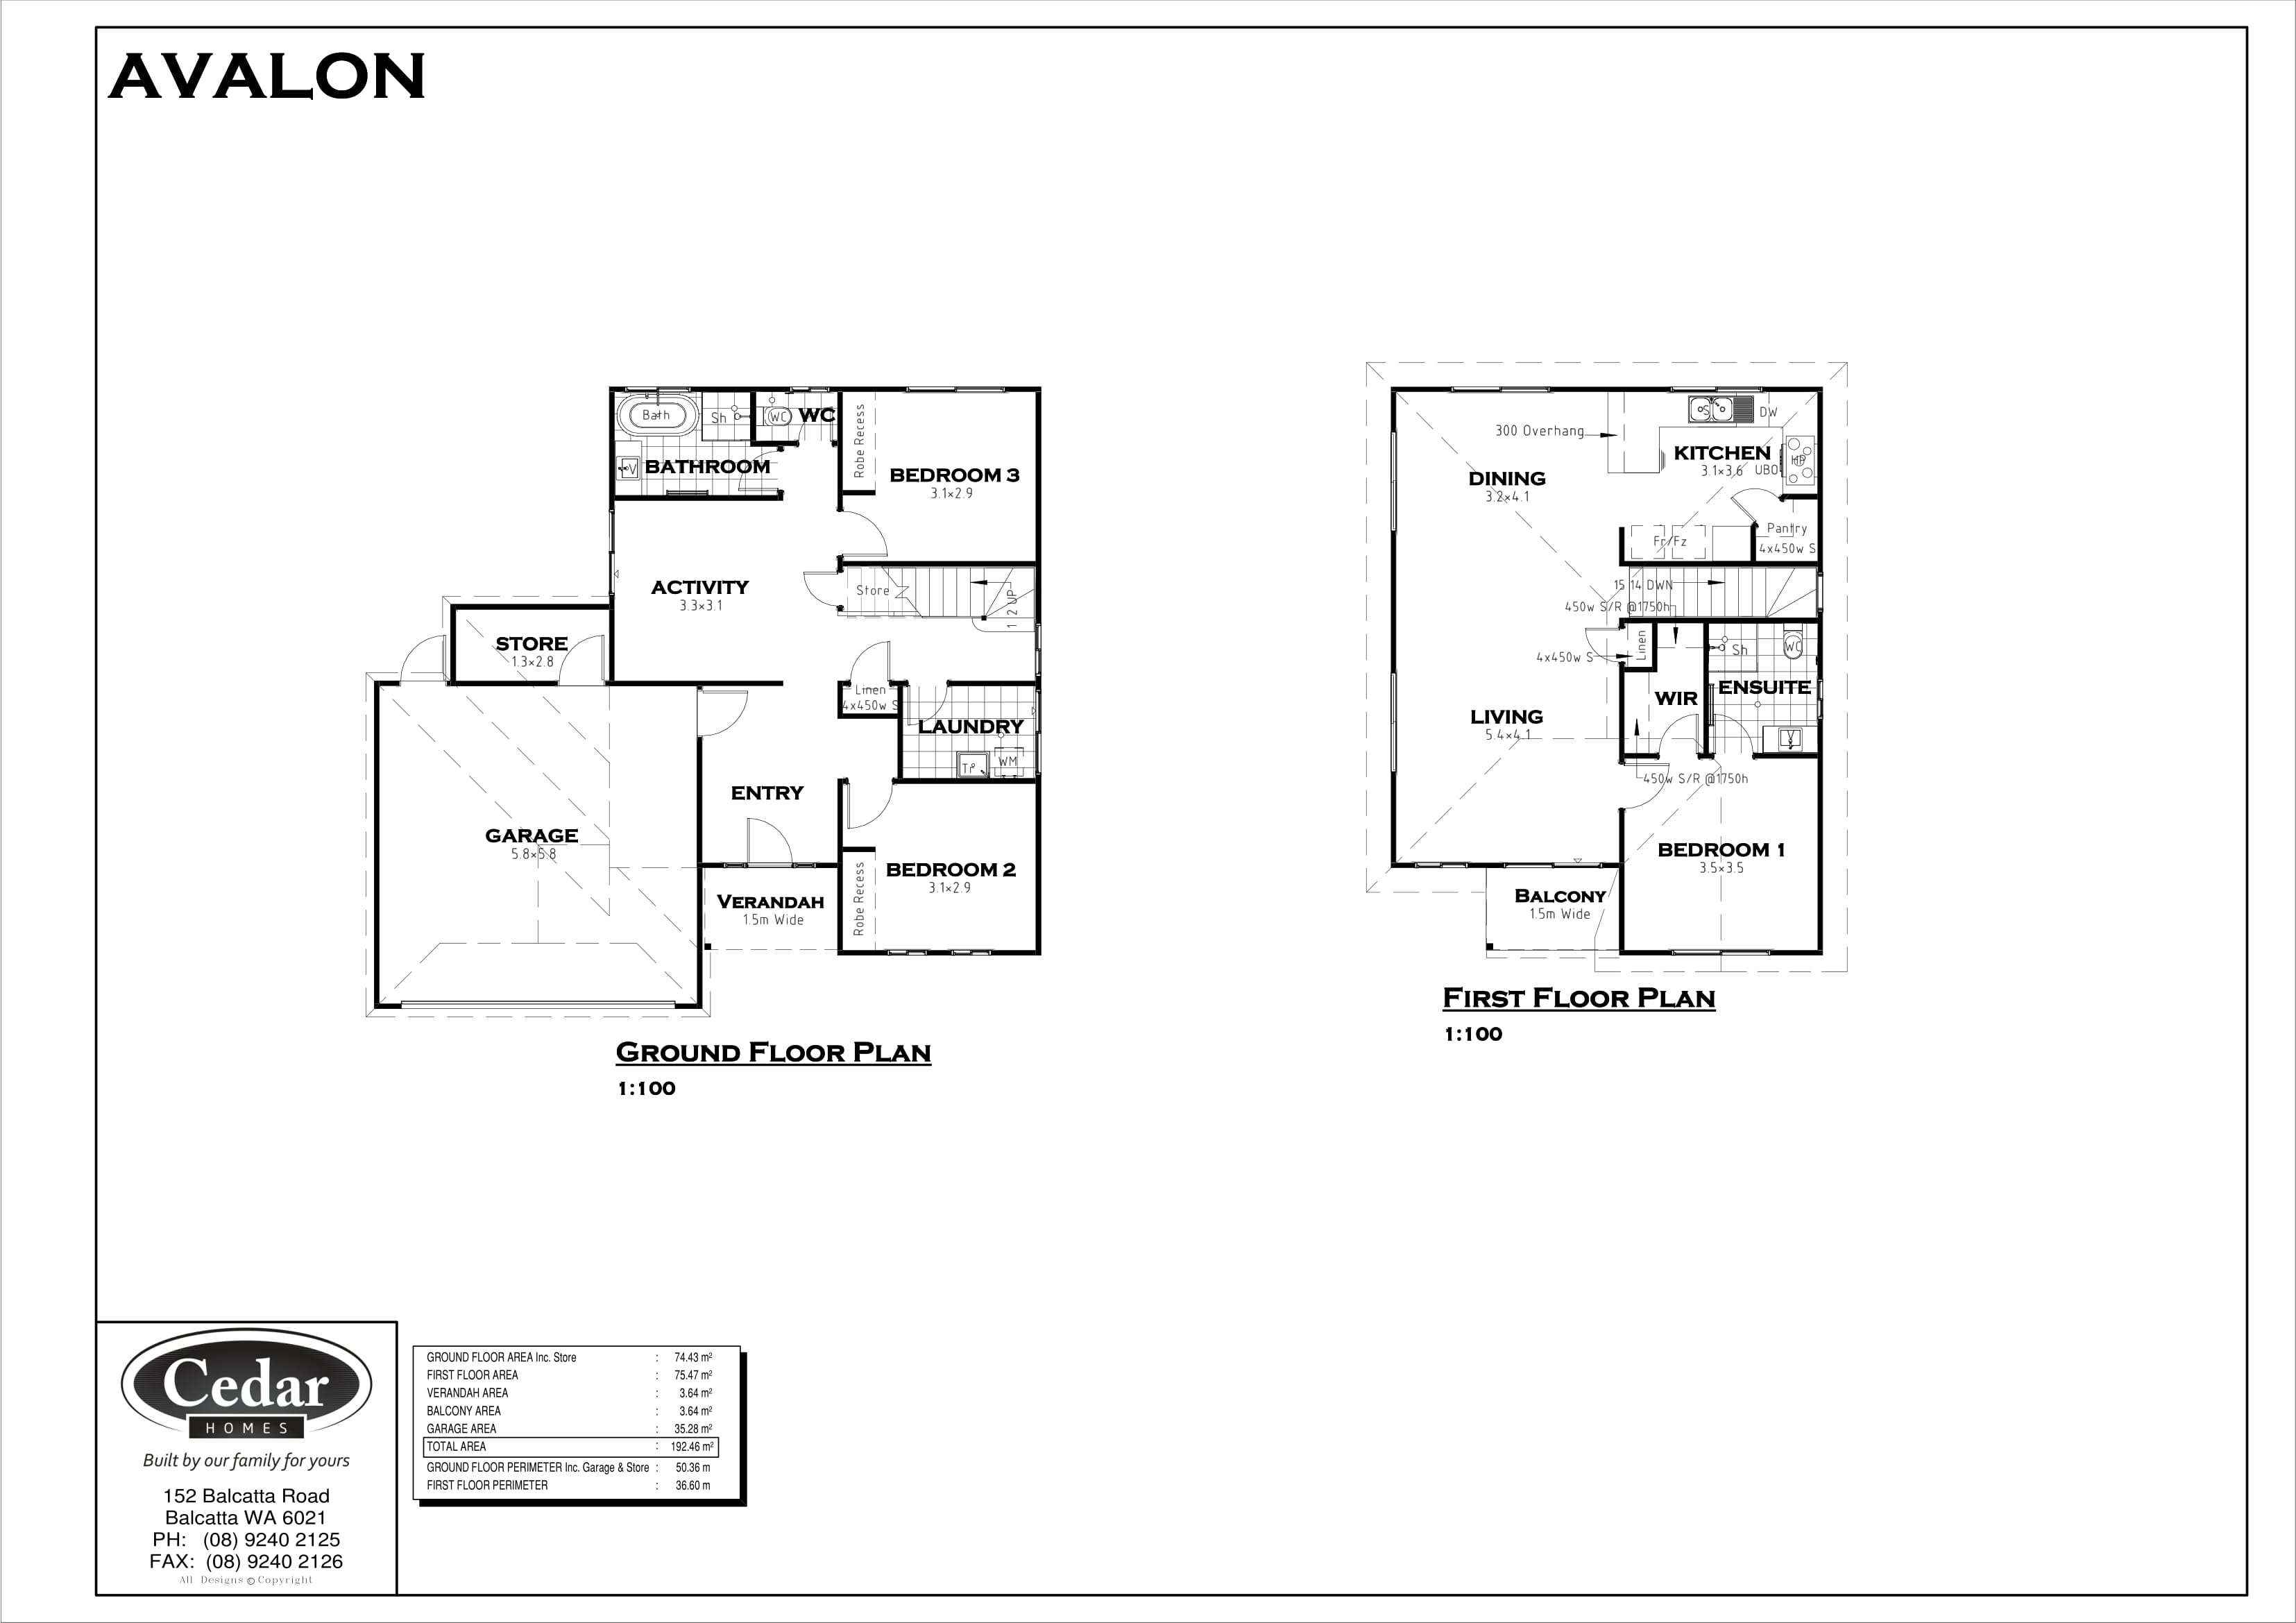 floor plan of the avalon style house against a white background.